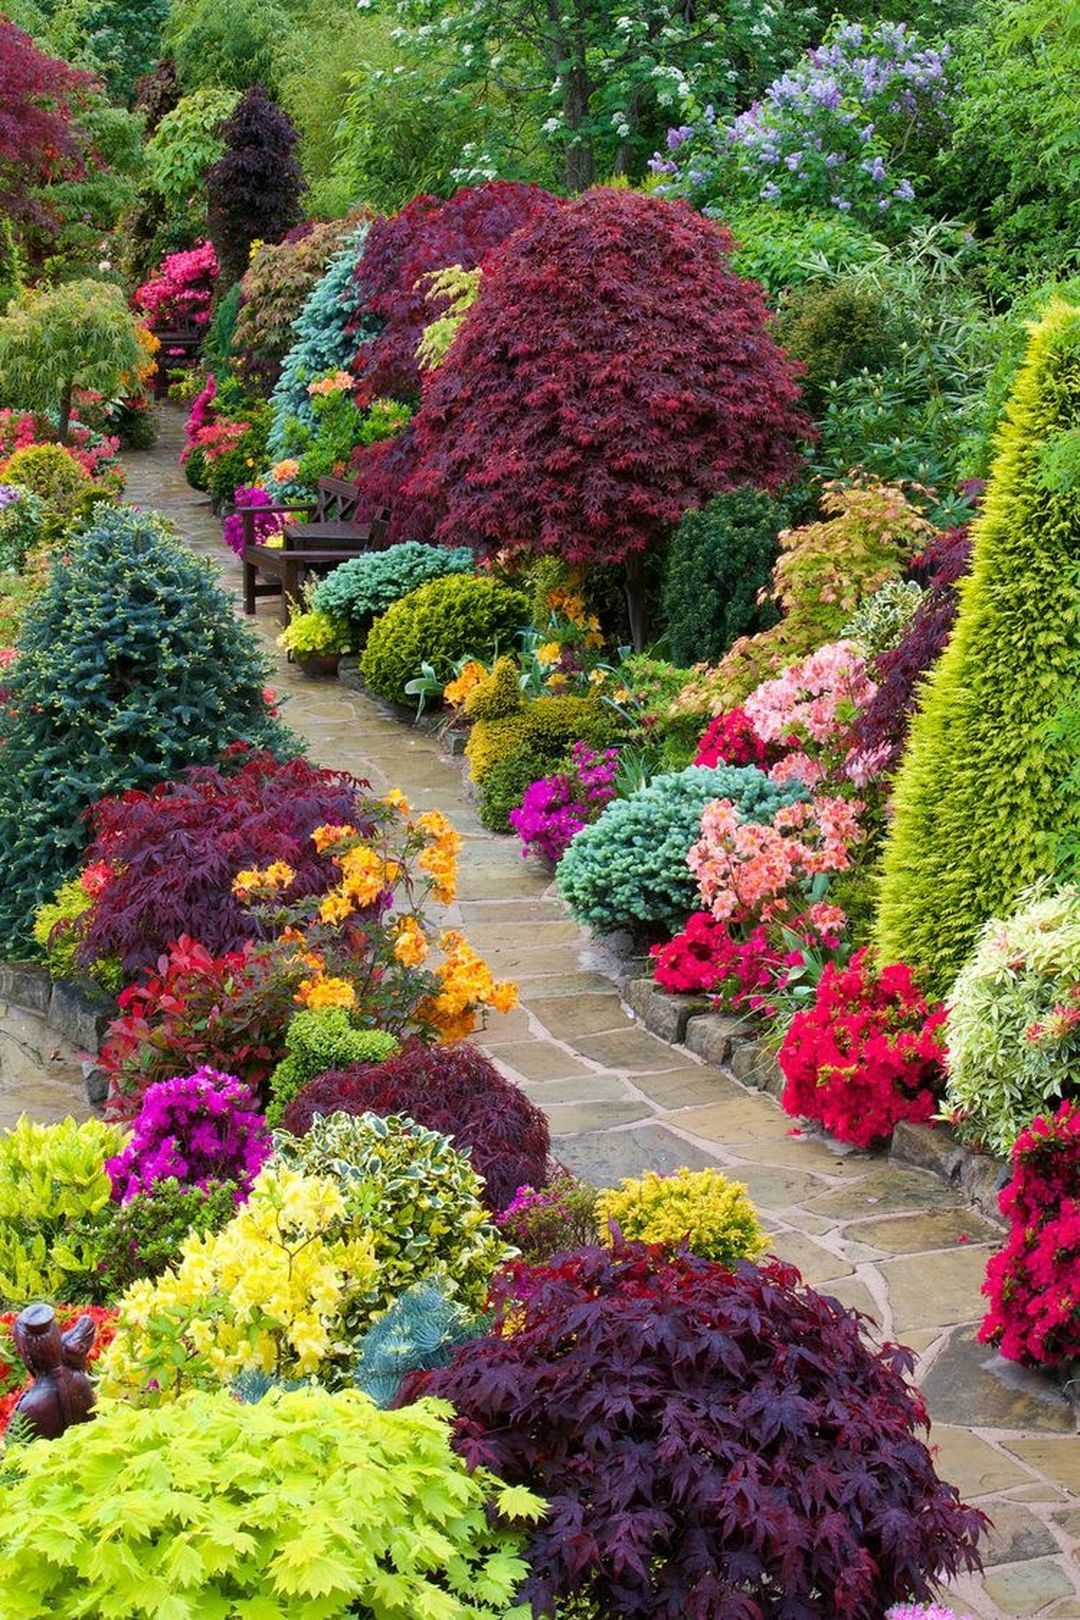 35 Easy DIY Backyard Landscaping On A Budget  Https://www.onechitecture.com/2017/09/22/35 Easy Diy Backyard Landscaping  Budget/